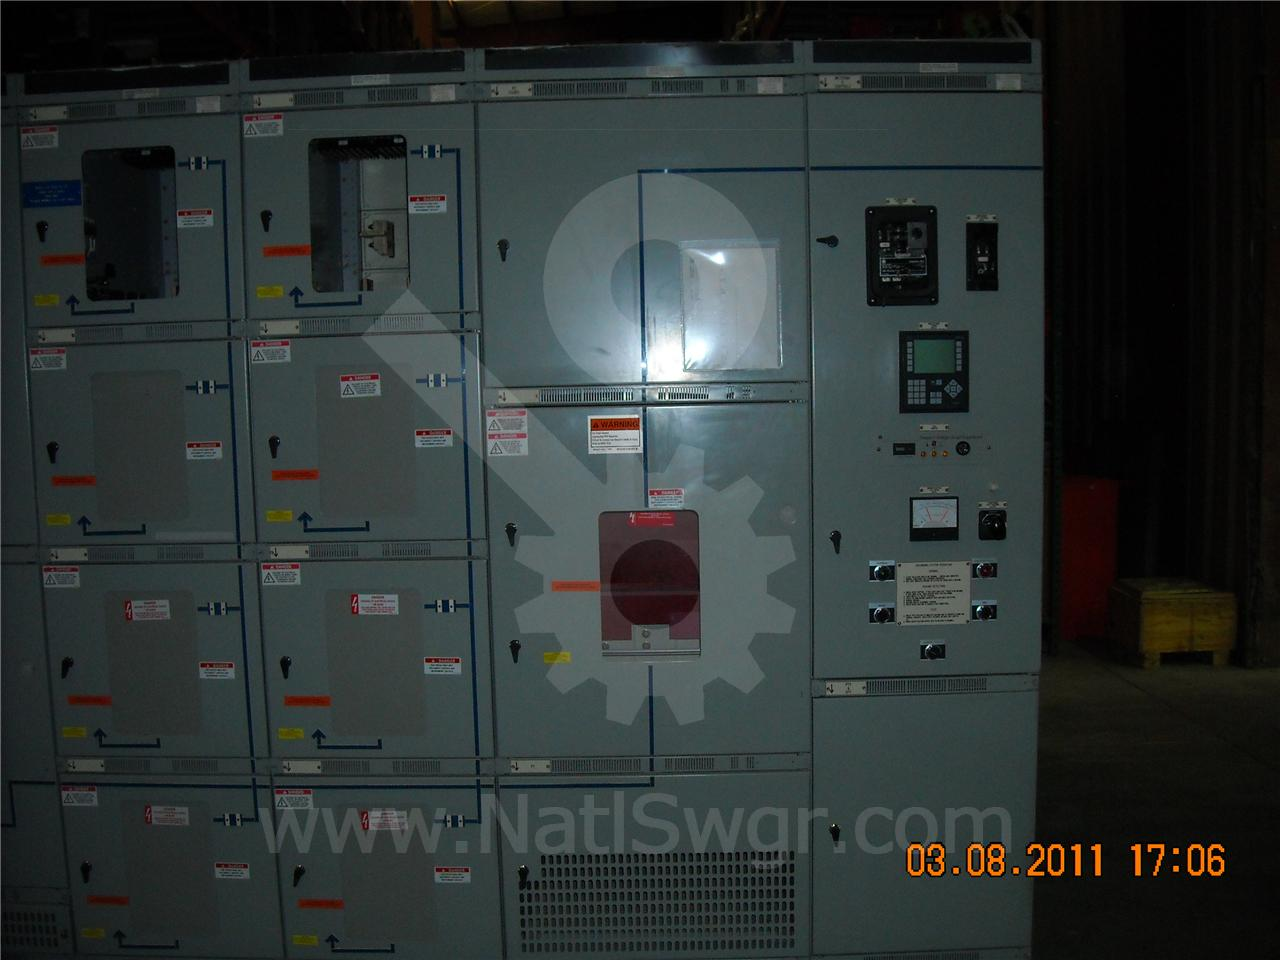 AKD-8 4000A GE / General Electric AKD-8 INDOOR SWITCHGEAR 1-4000A MAIN